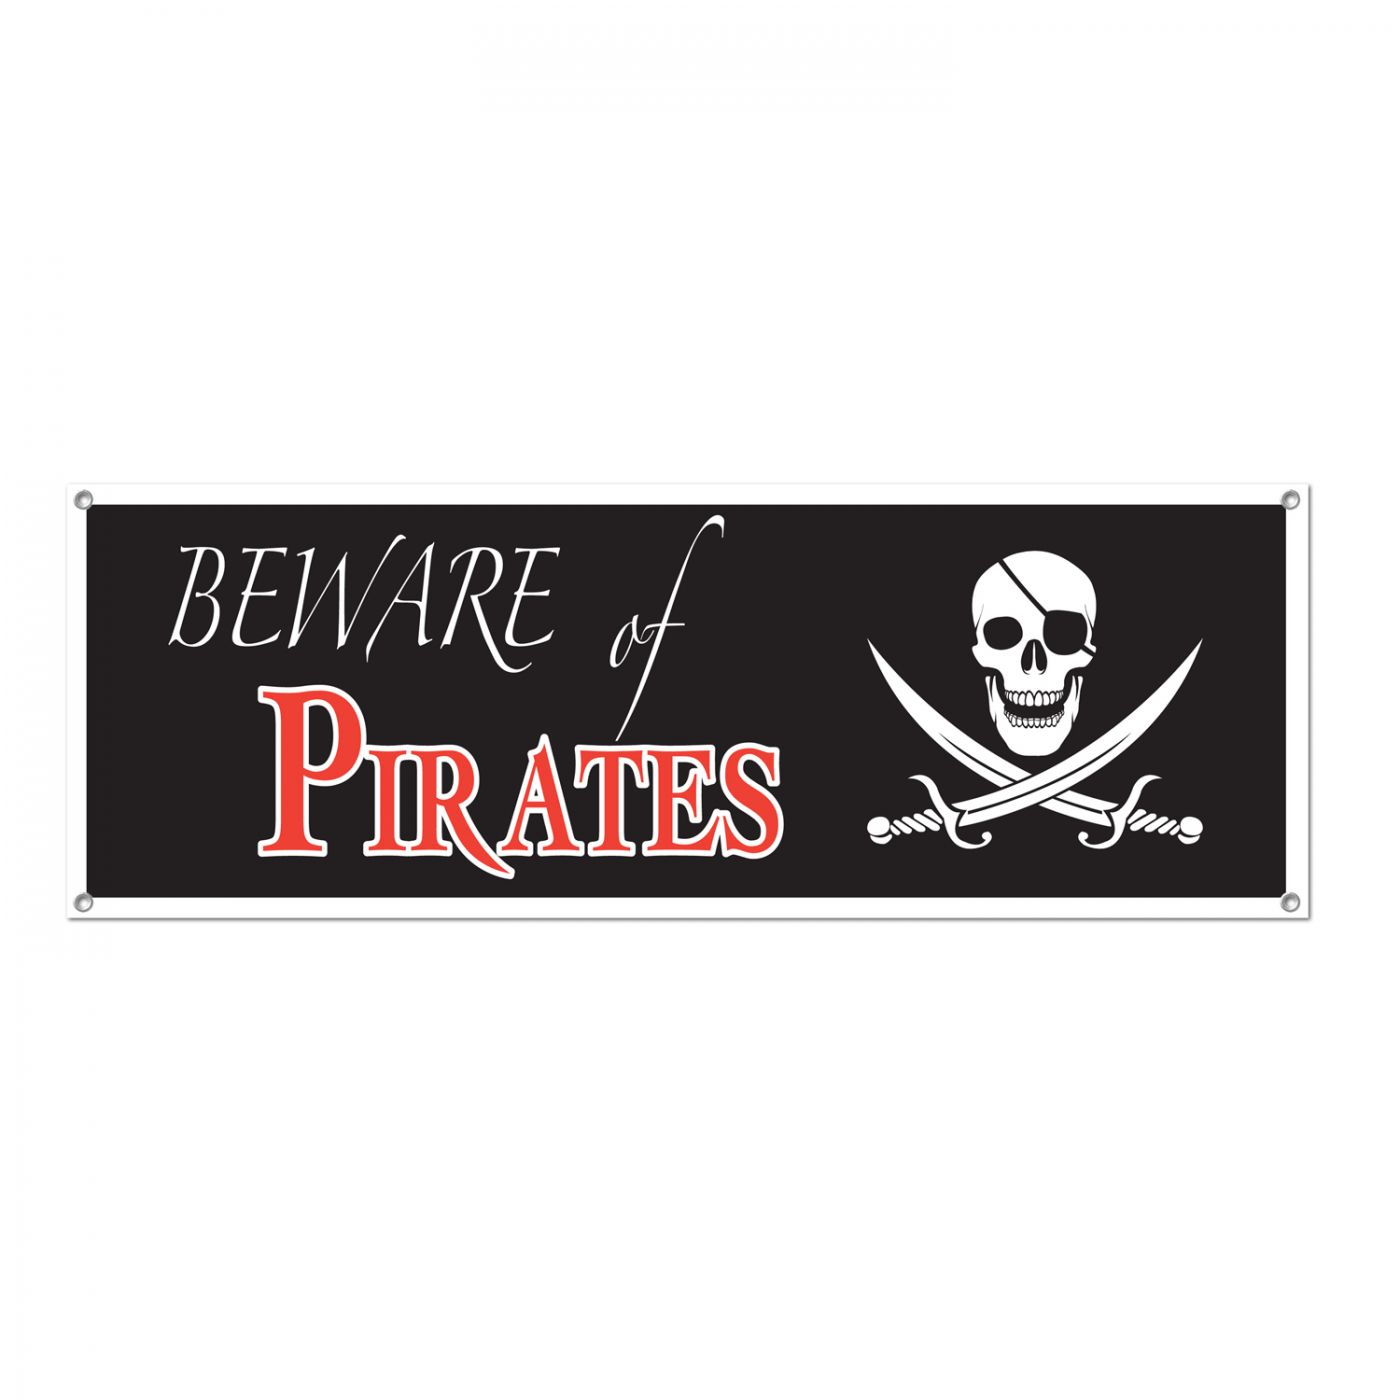 Beware Of Pirates Sign Banner image